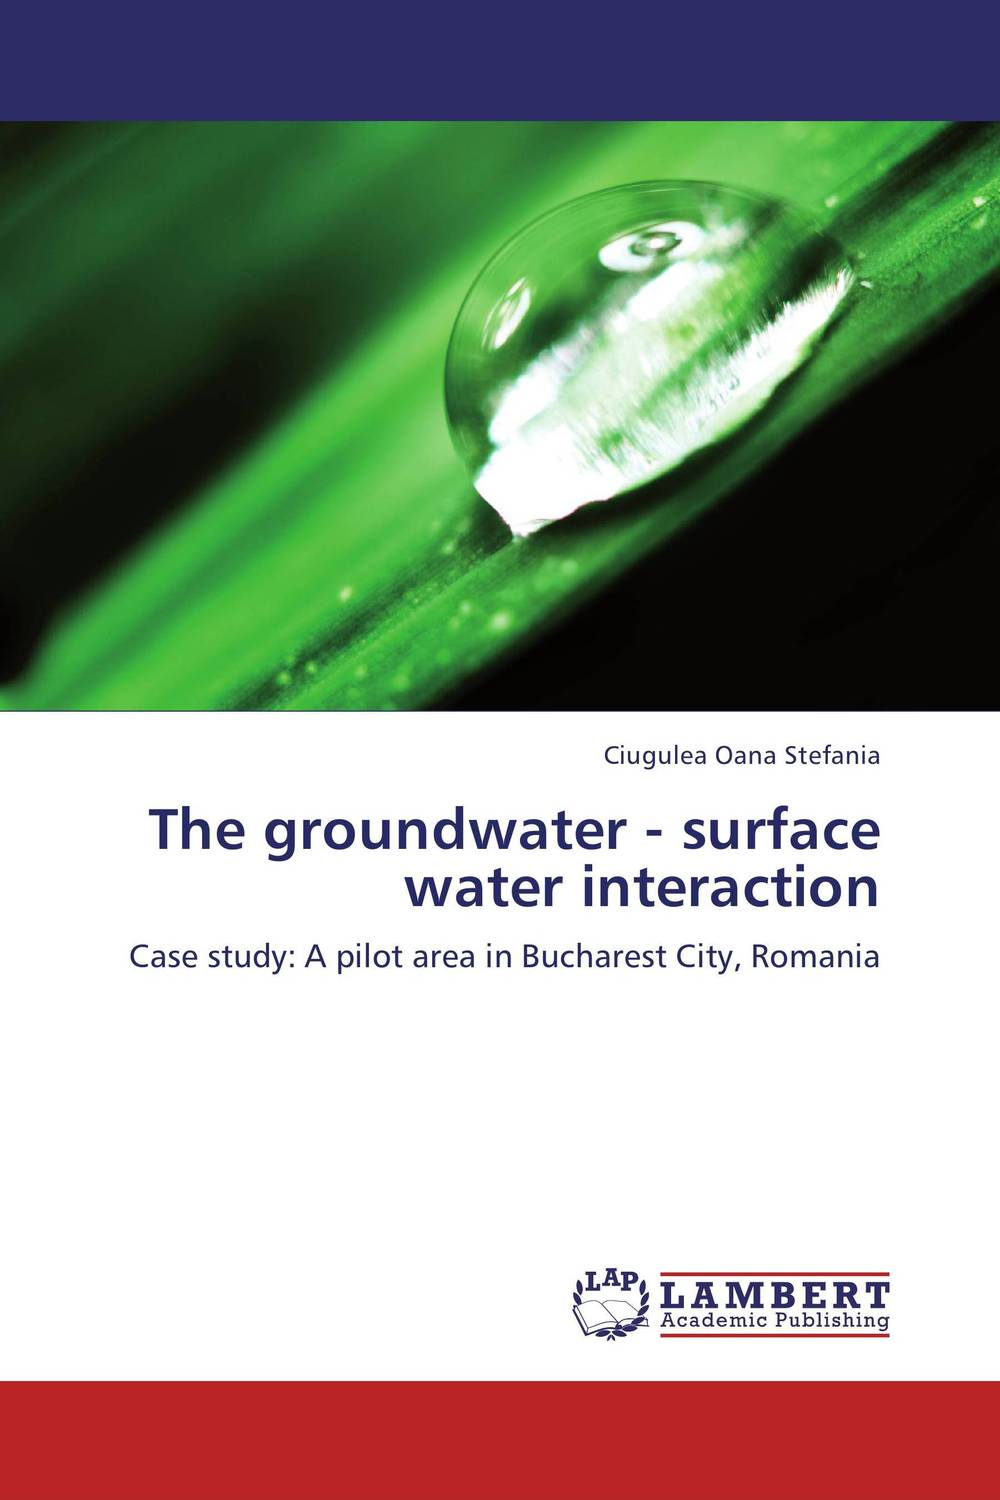 The groundwater - surface water interaction surface and ground water interaction